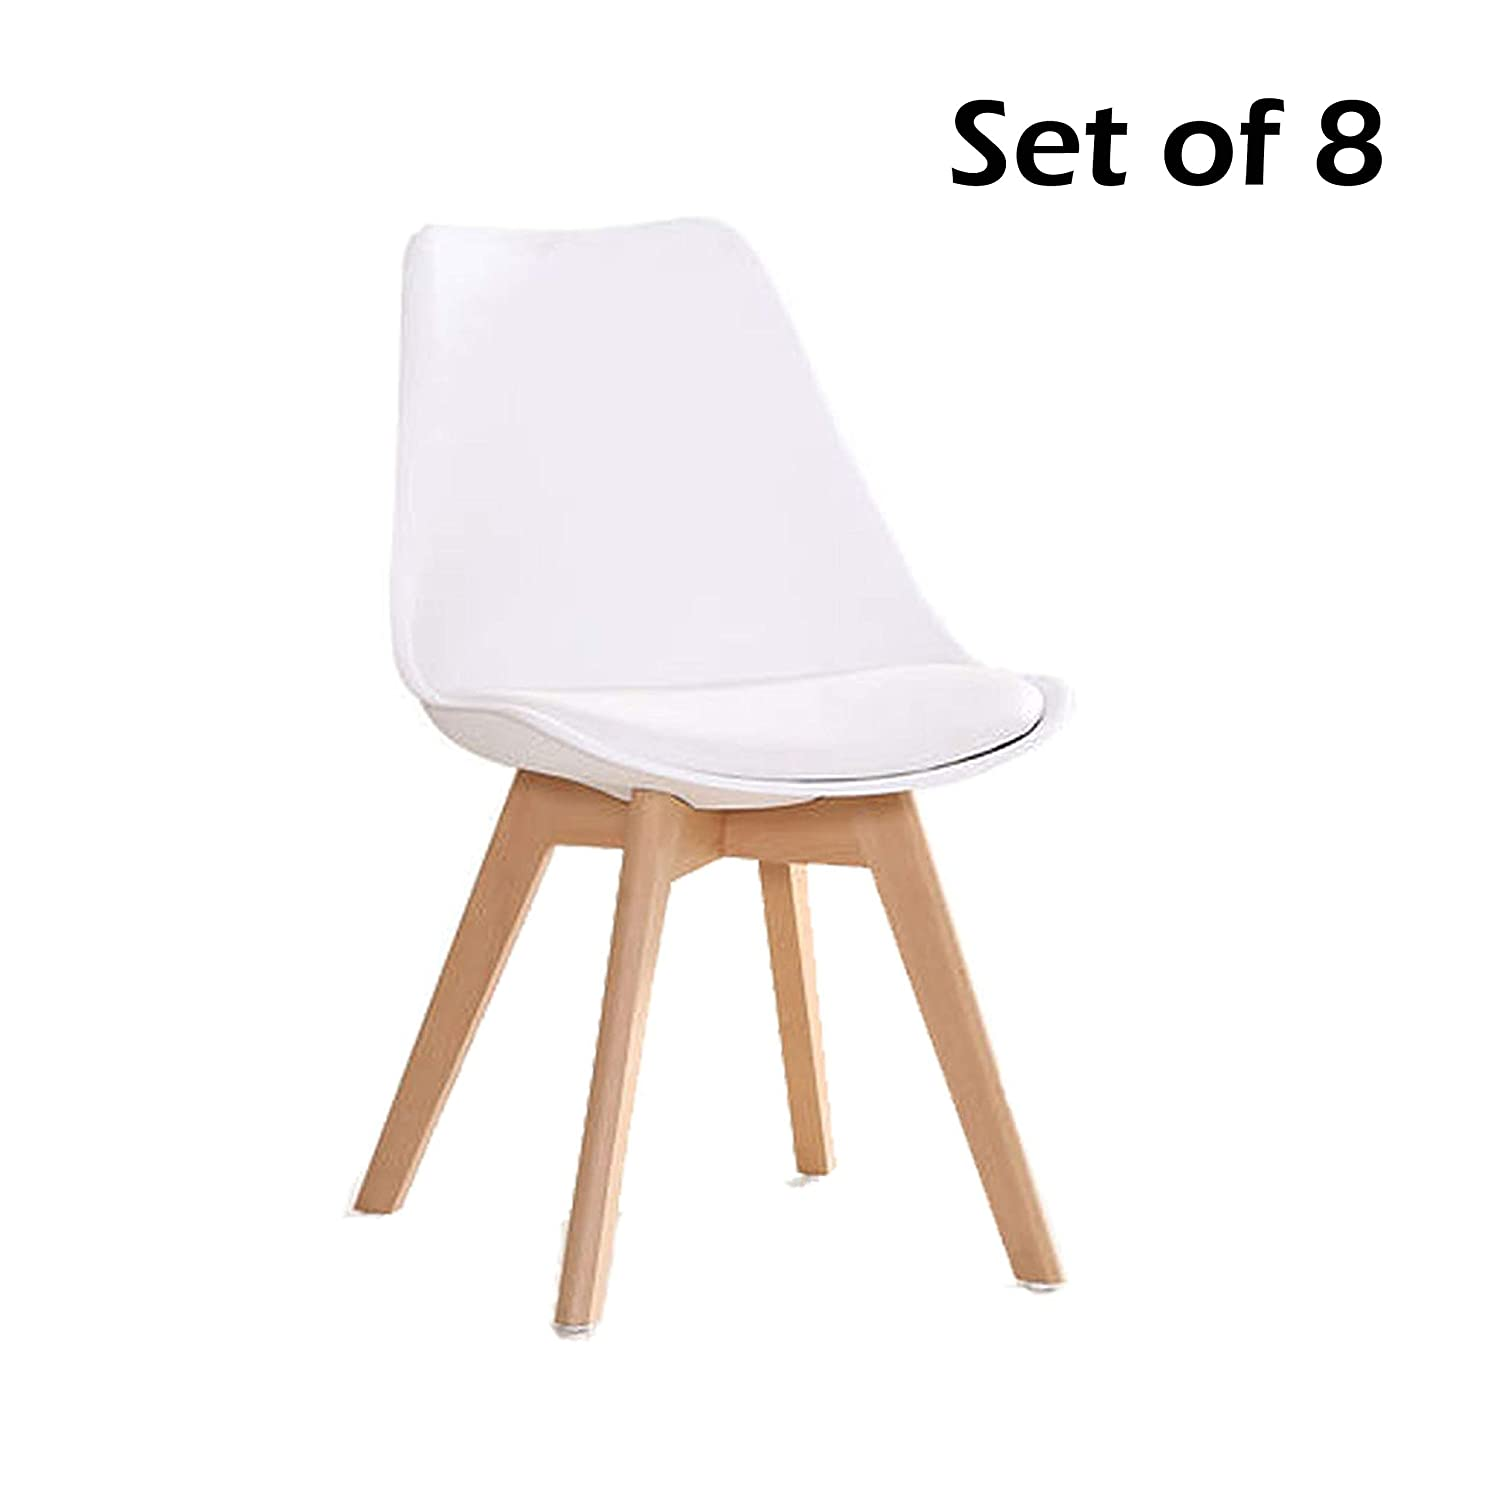 Amazon com yeefy dining chairs modern dining room chair natural wood legs set of 8white chairs